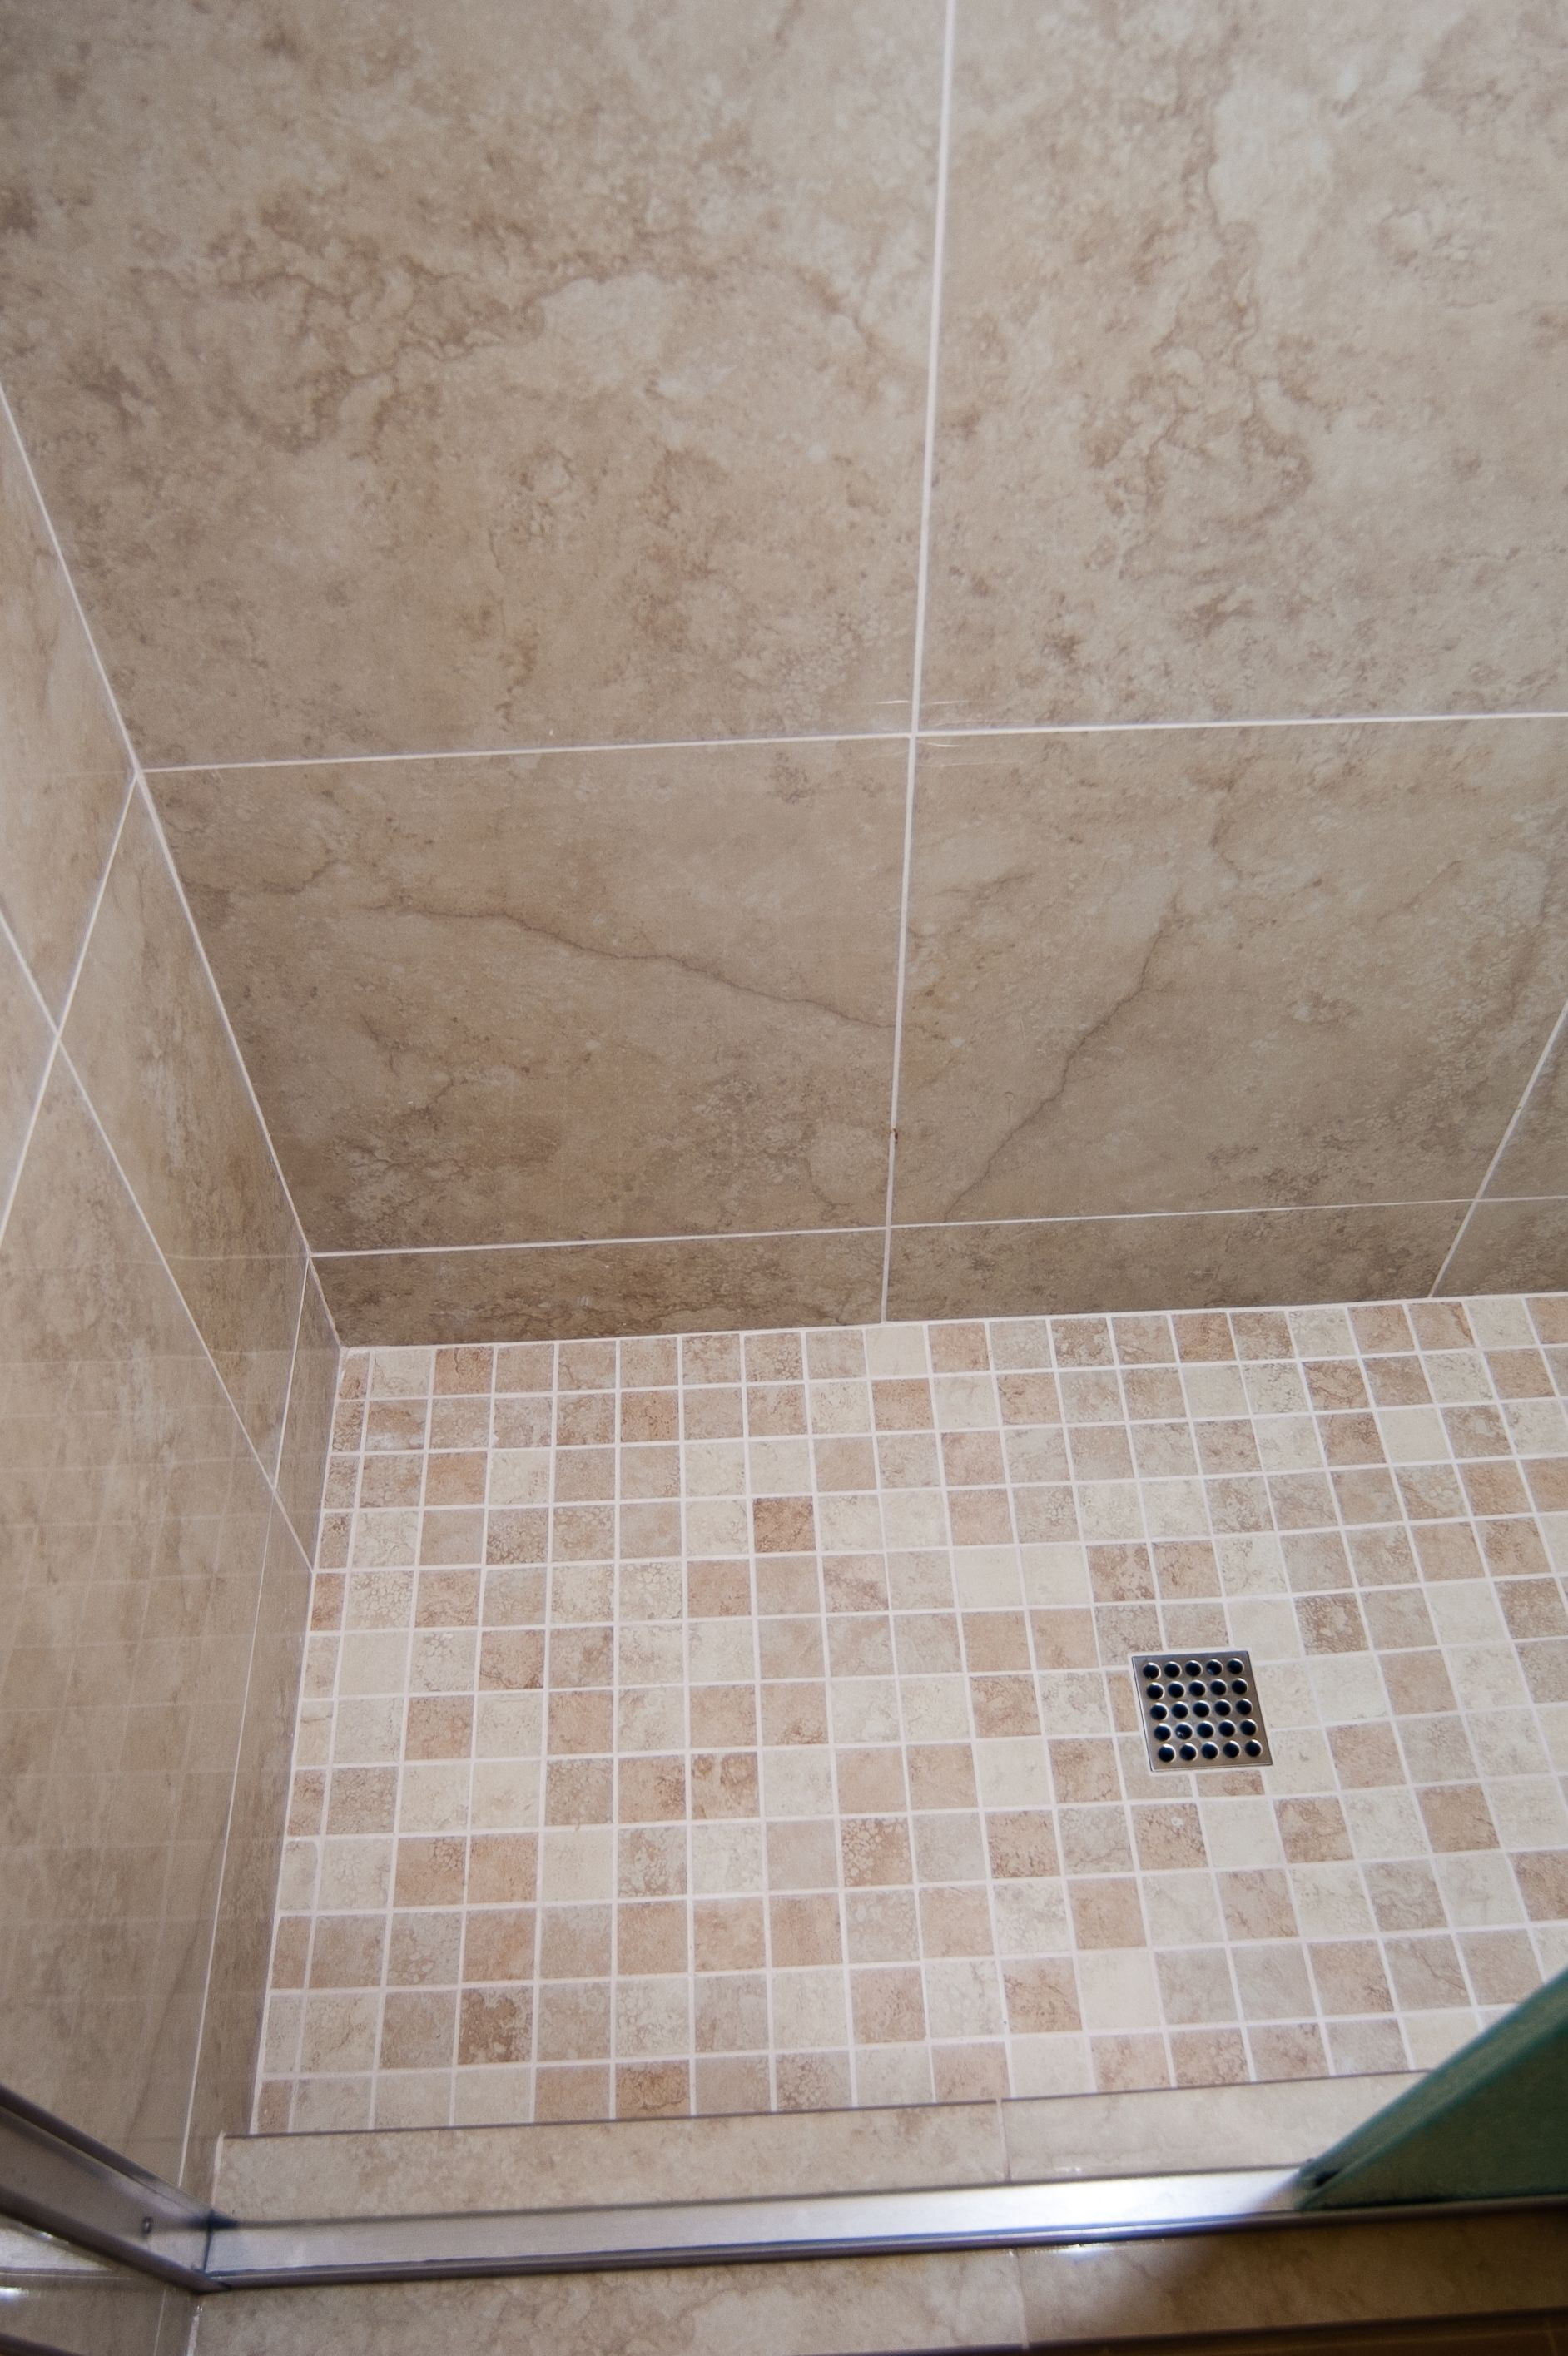 Bathroom Remodel Photos Bathroom Remodel Inspirations Pinterest - 2x2 mosaic tile for shower floor